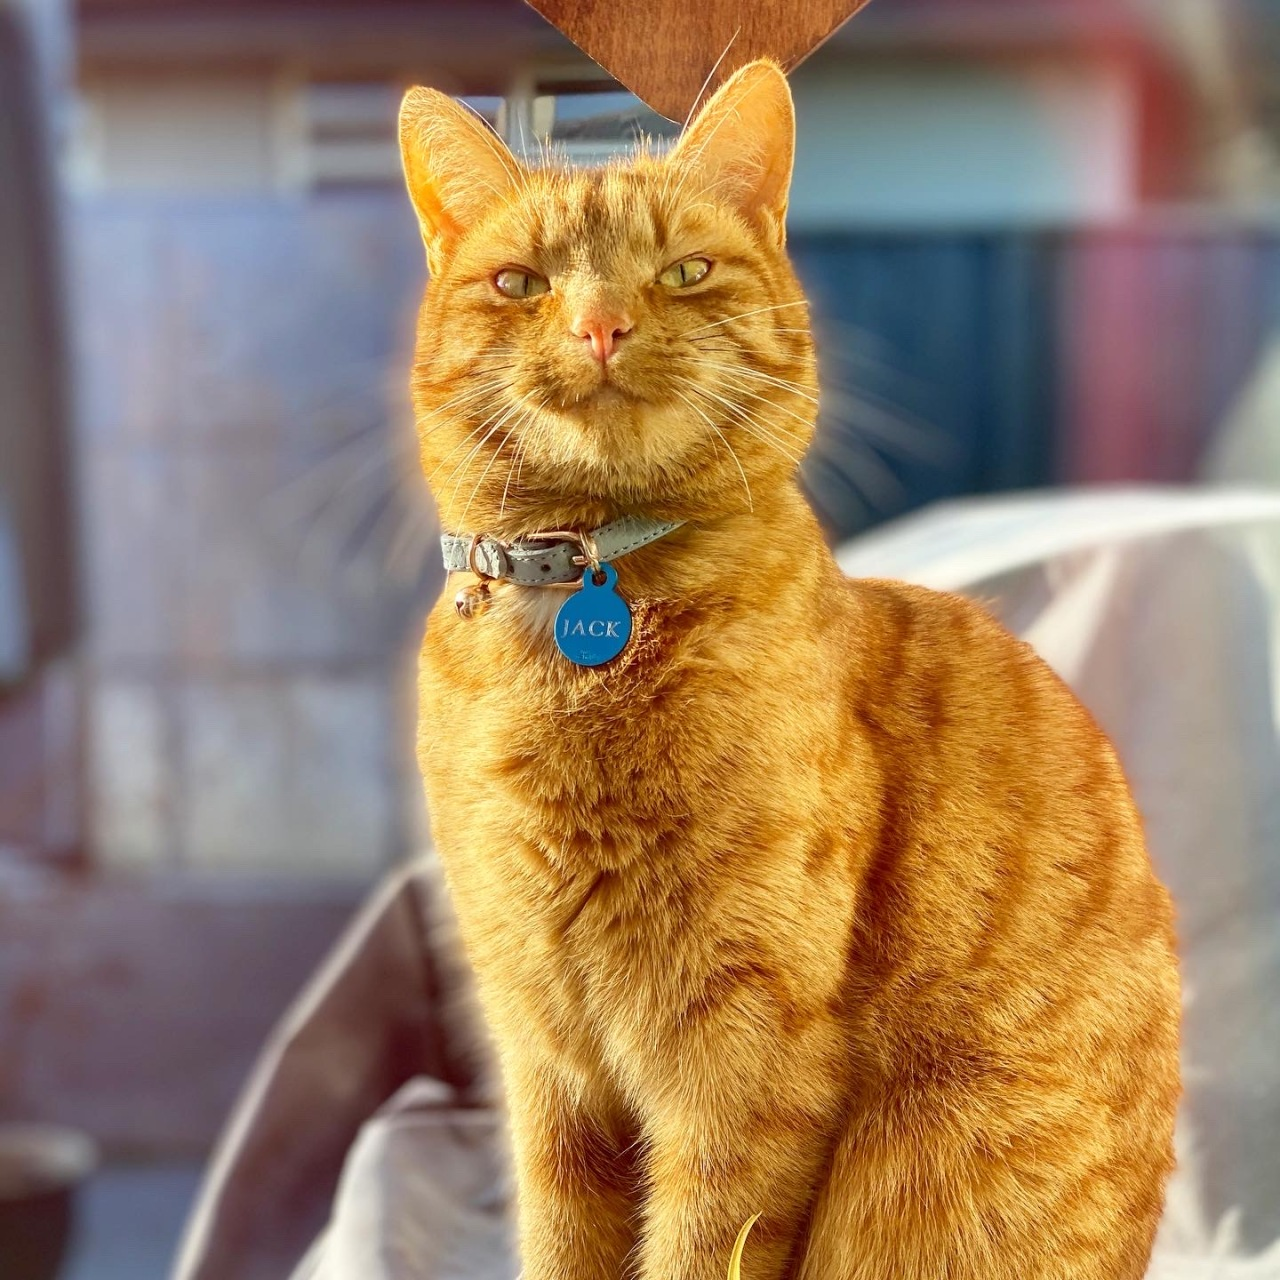 Ginger cat (Jack) looking very happy after being fed on 29 July 2020